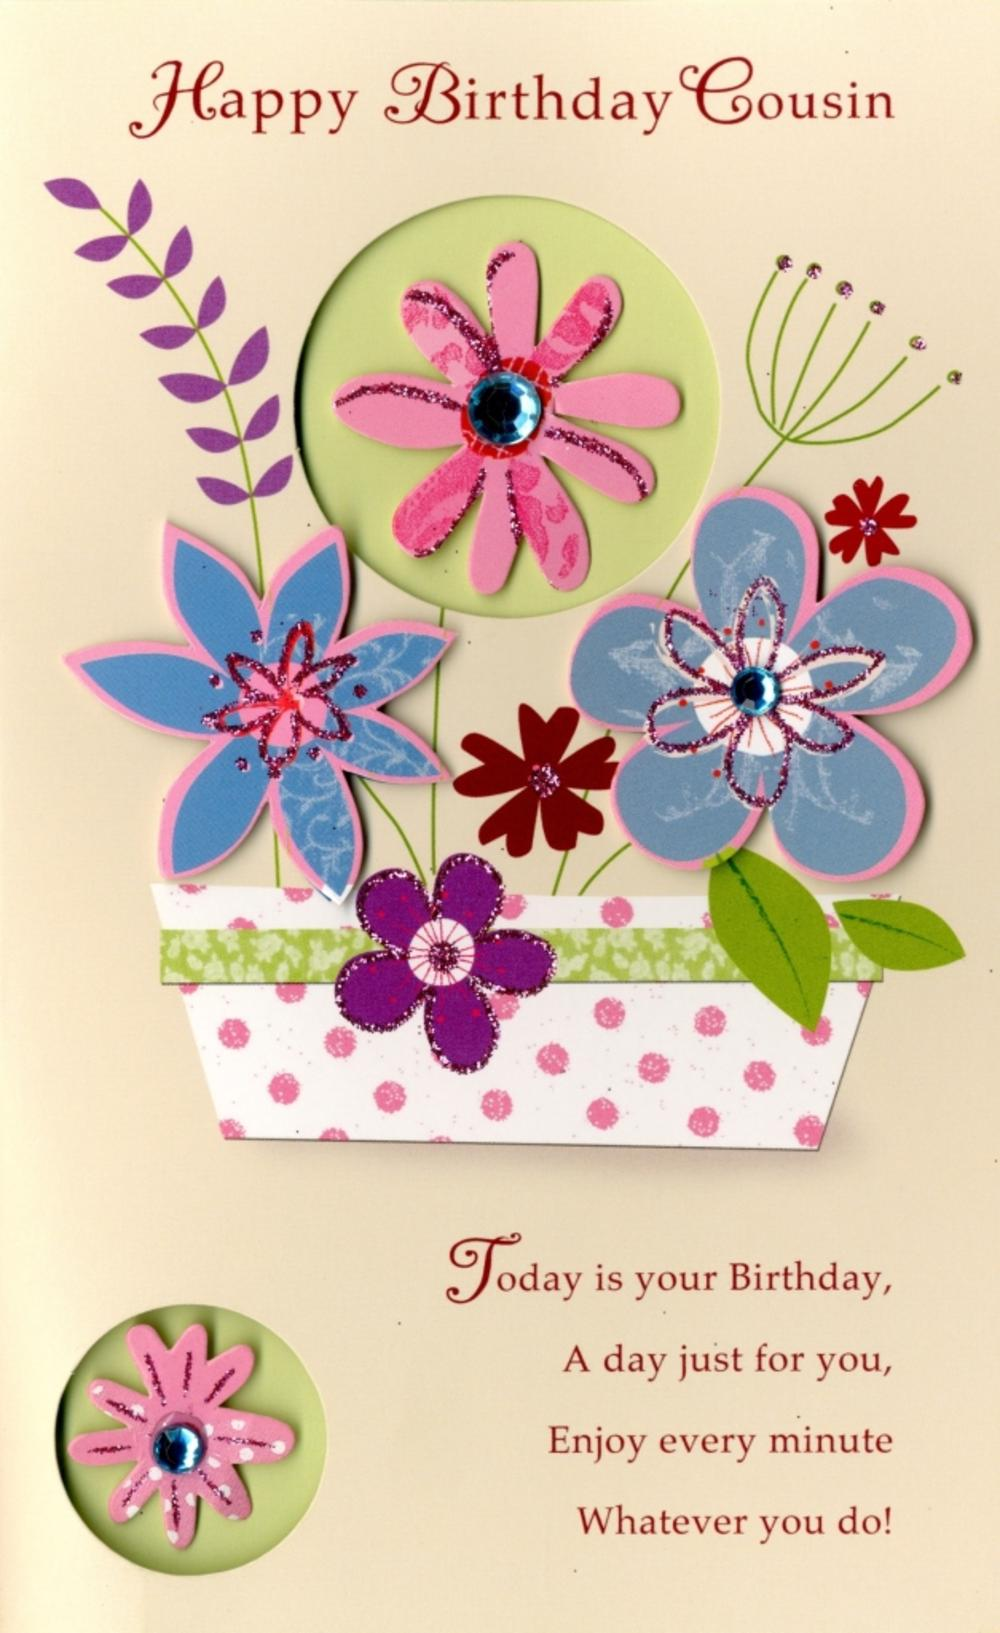 Happy Birthday Cousin Embellished Greeting Card